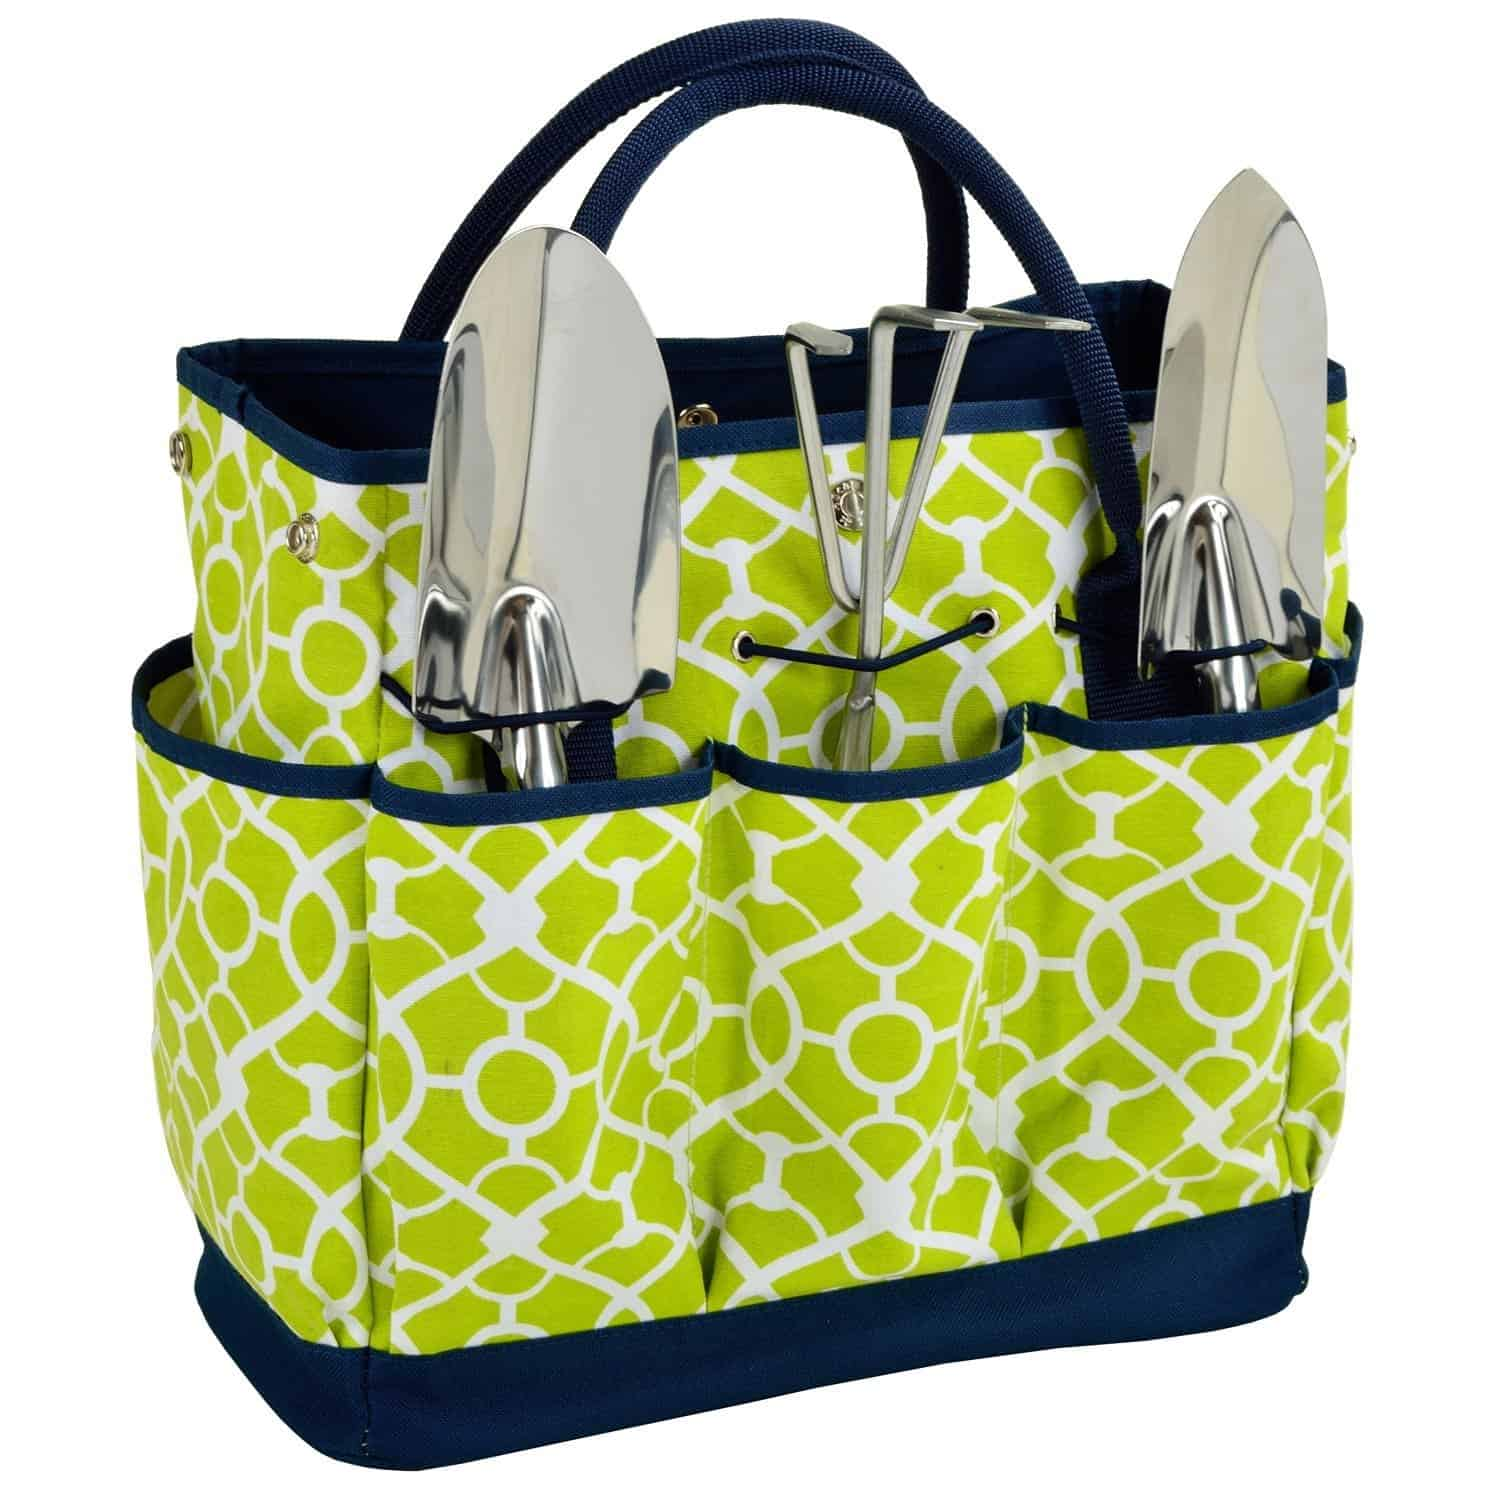 Lime green and navy Gardener's tool basket with tools